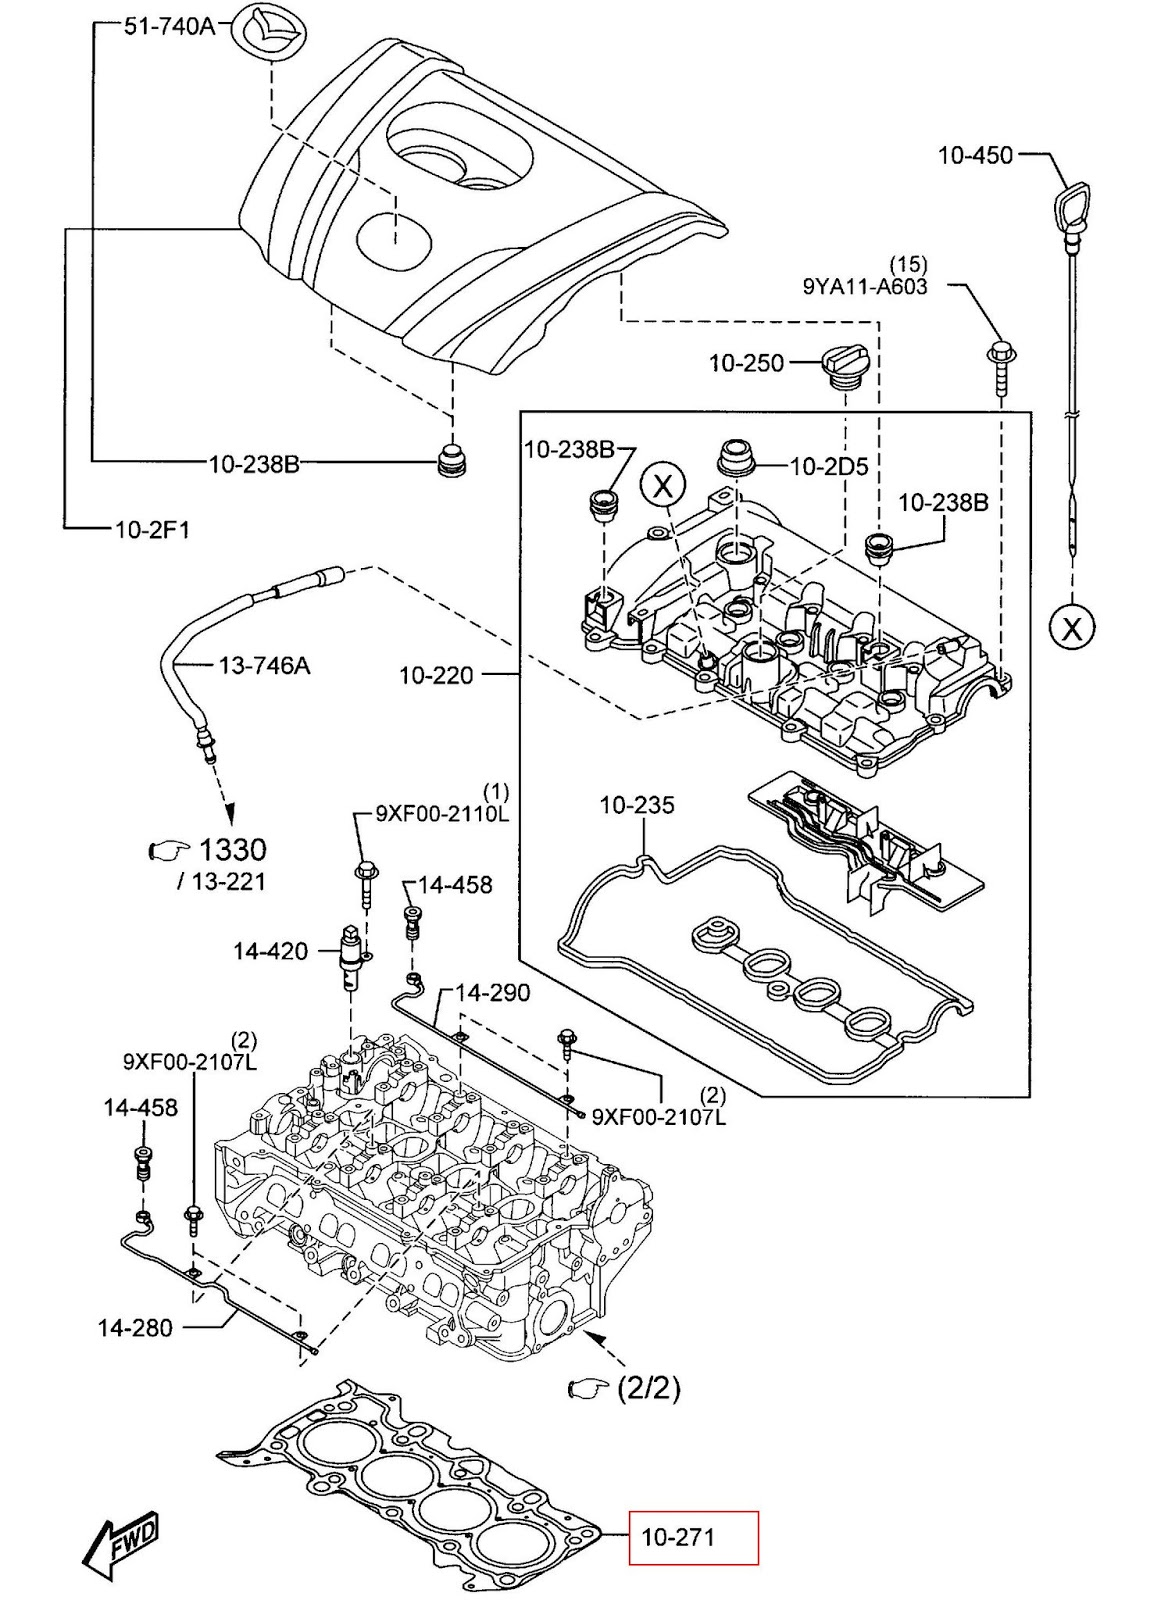 Kp Gasket Mazda Cx 5 Skyactiv Engine Mx 3 Diagram While For The Py Their Part Number Will Be Py01 10 271 And 235 Some Of Parts Between This 2 Are Interchangeable